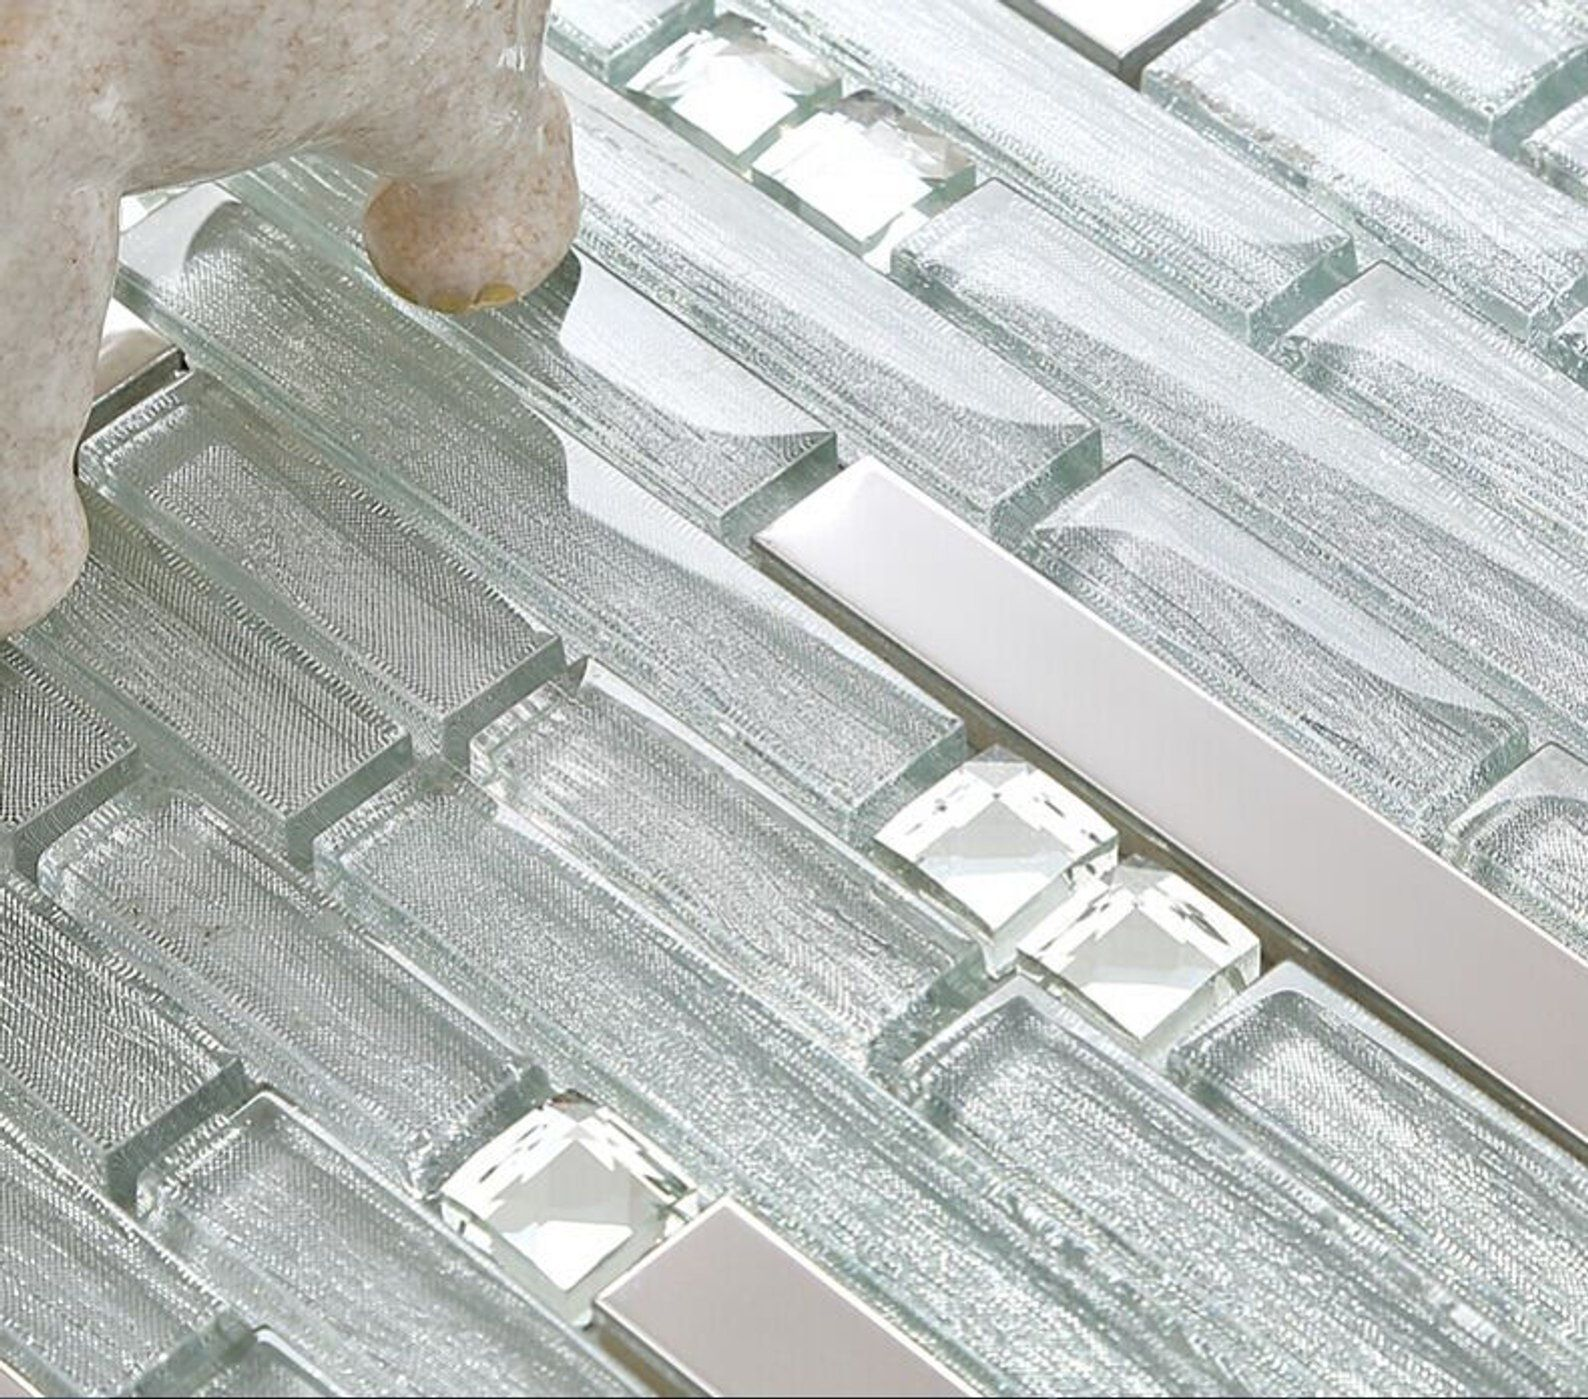 - Silver Stainless Steel And Glass Backsplash Tile With Rhinestones